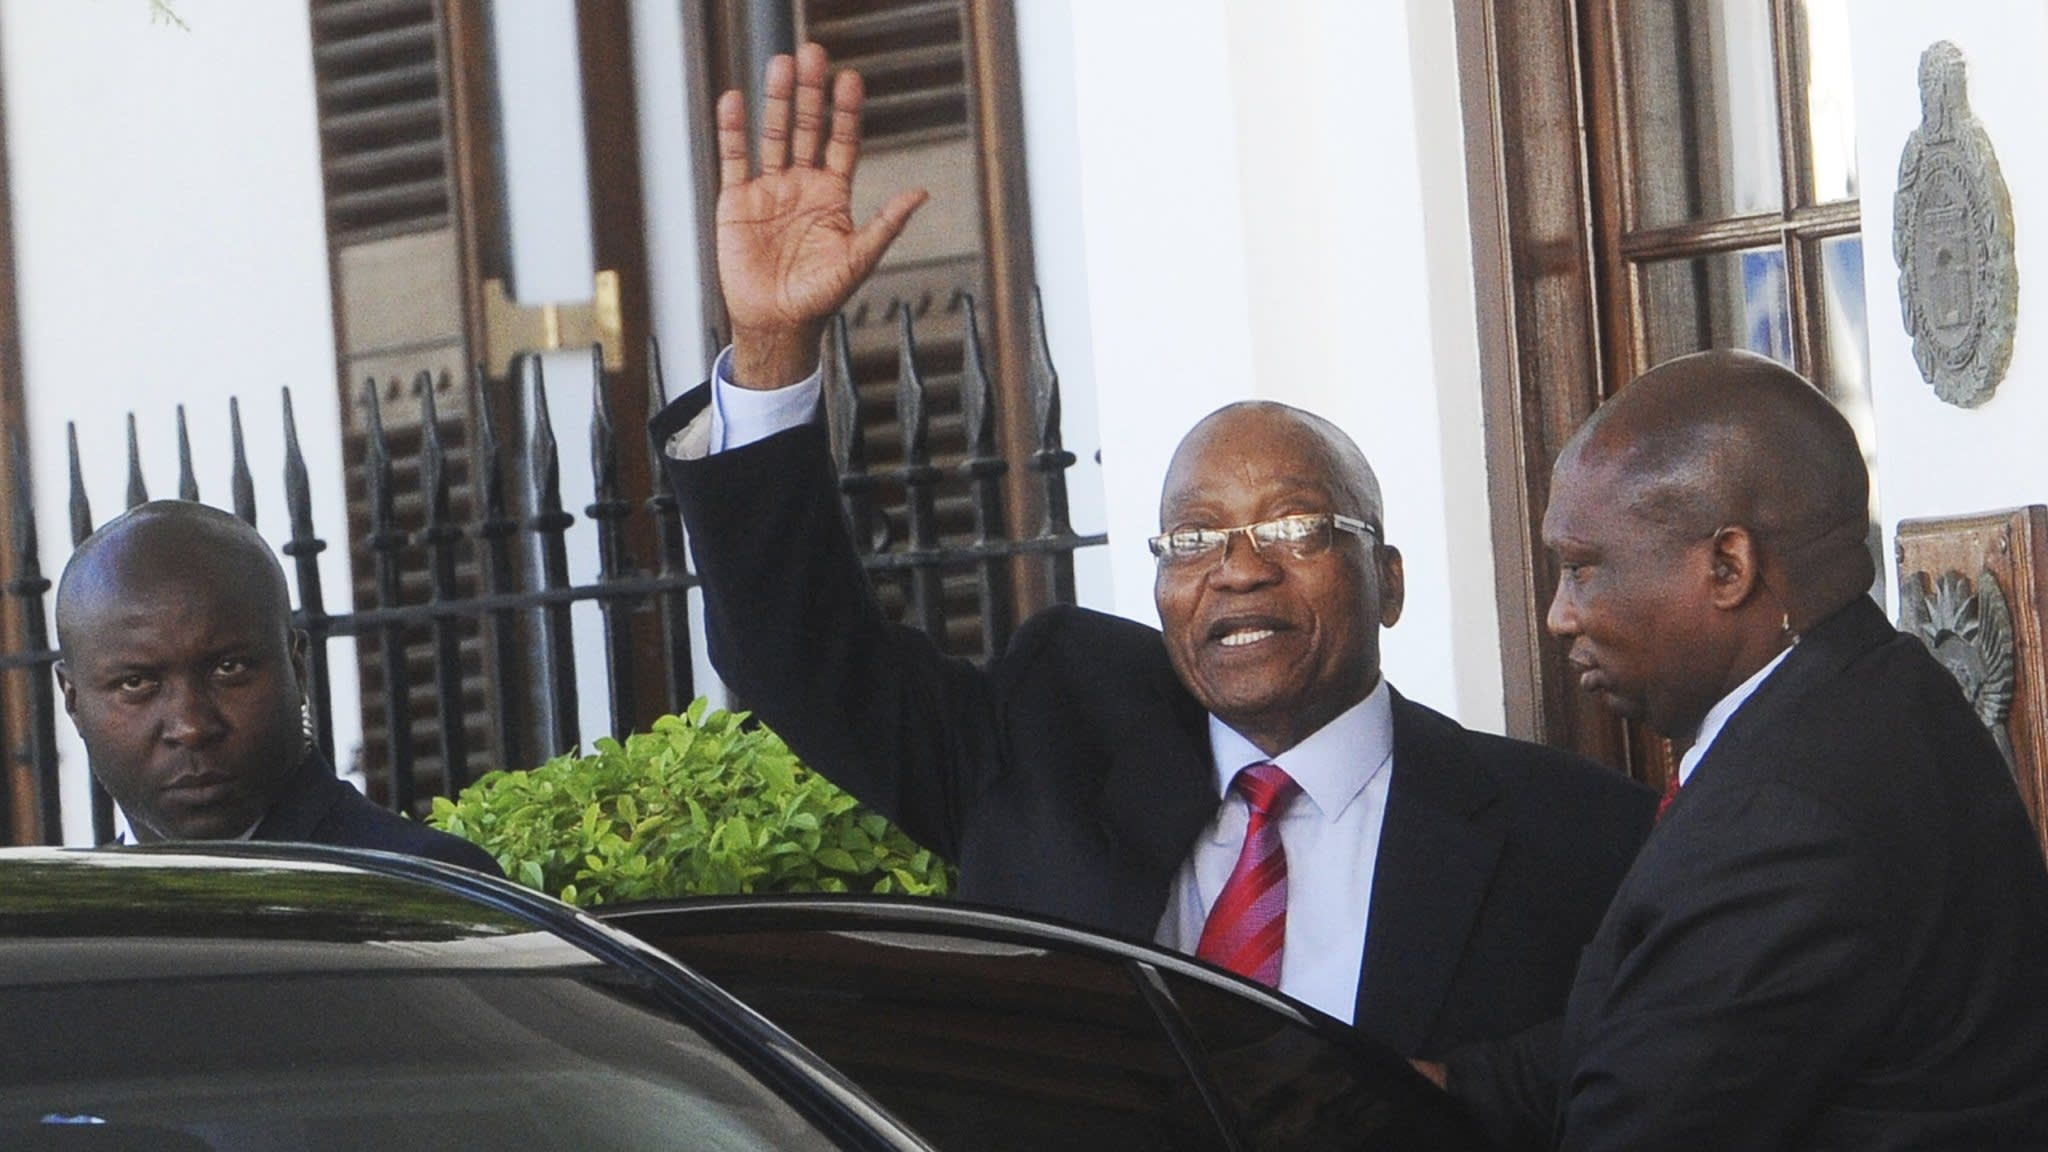 Zuma's exit appears closer as he meets rival